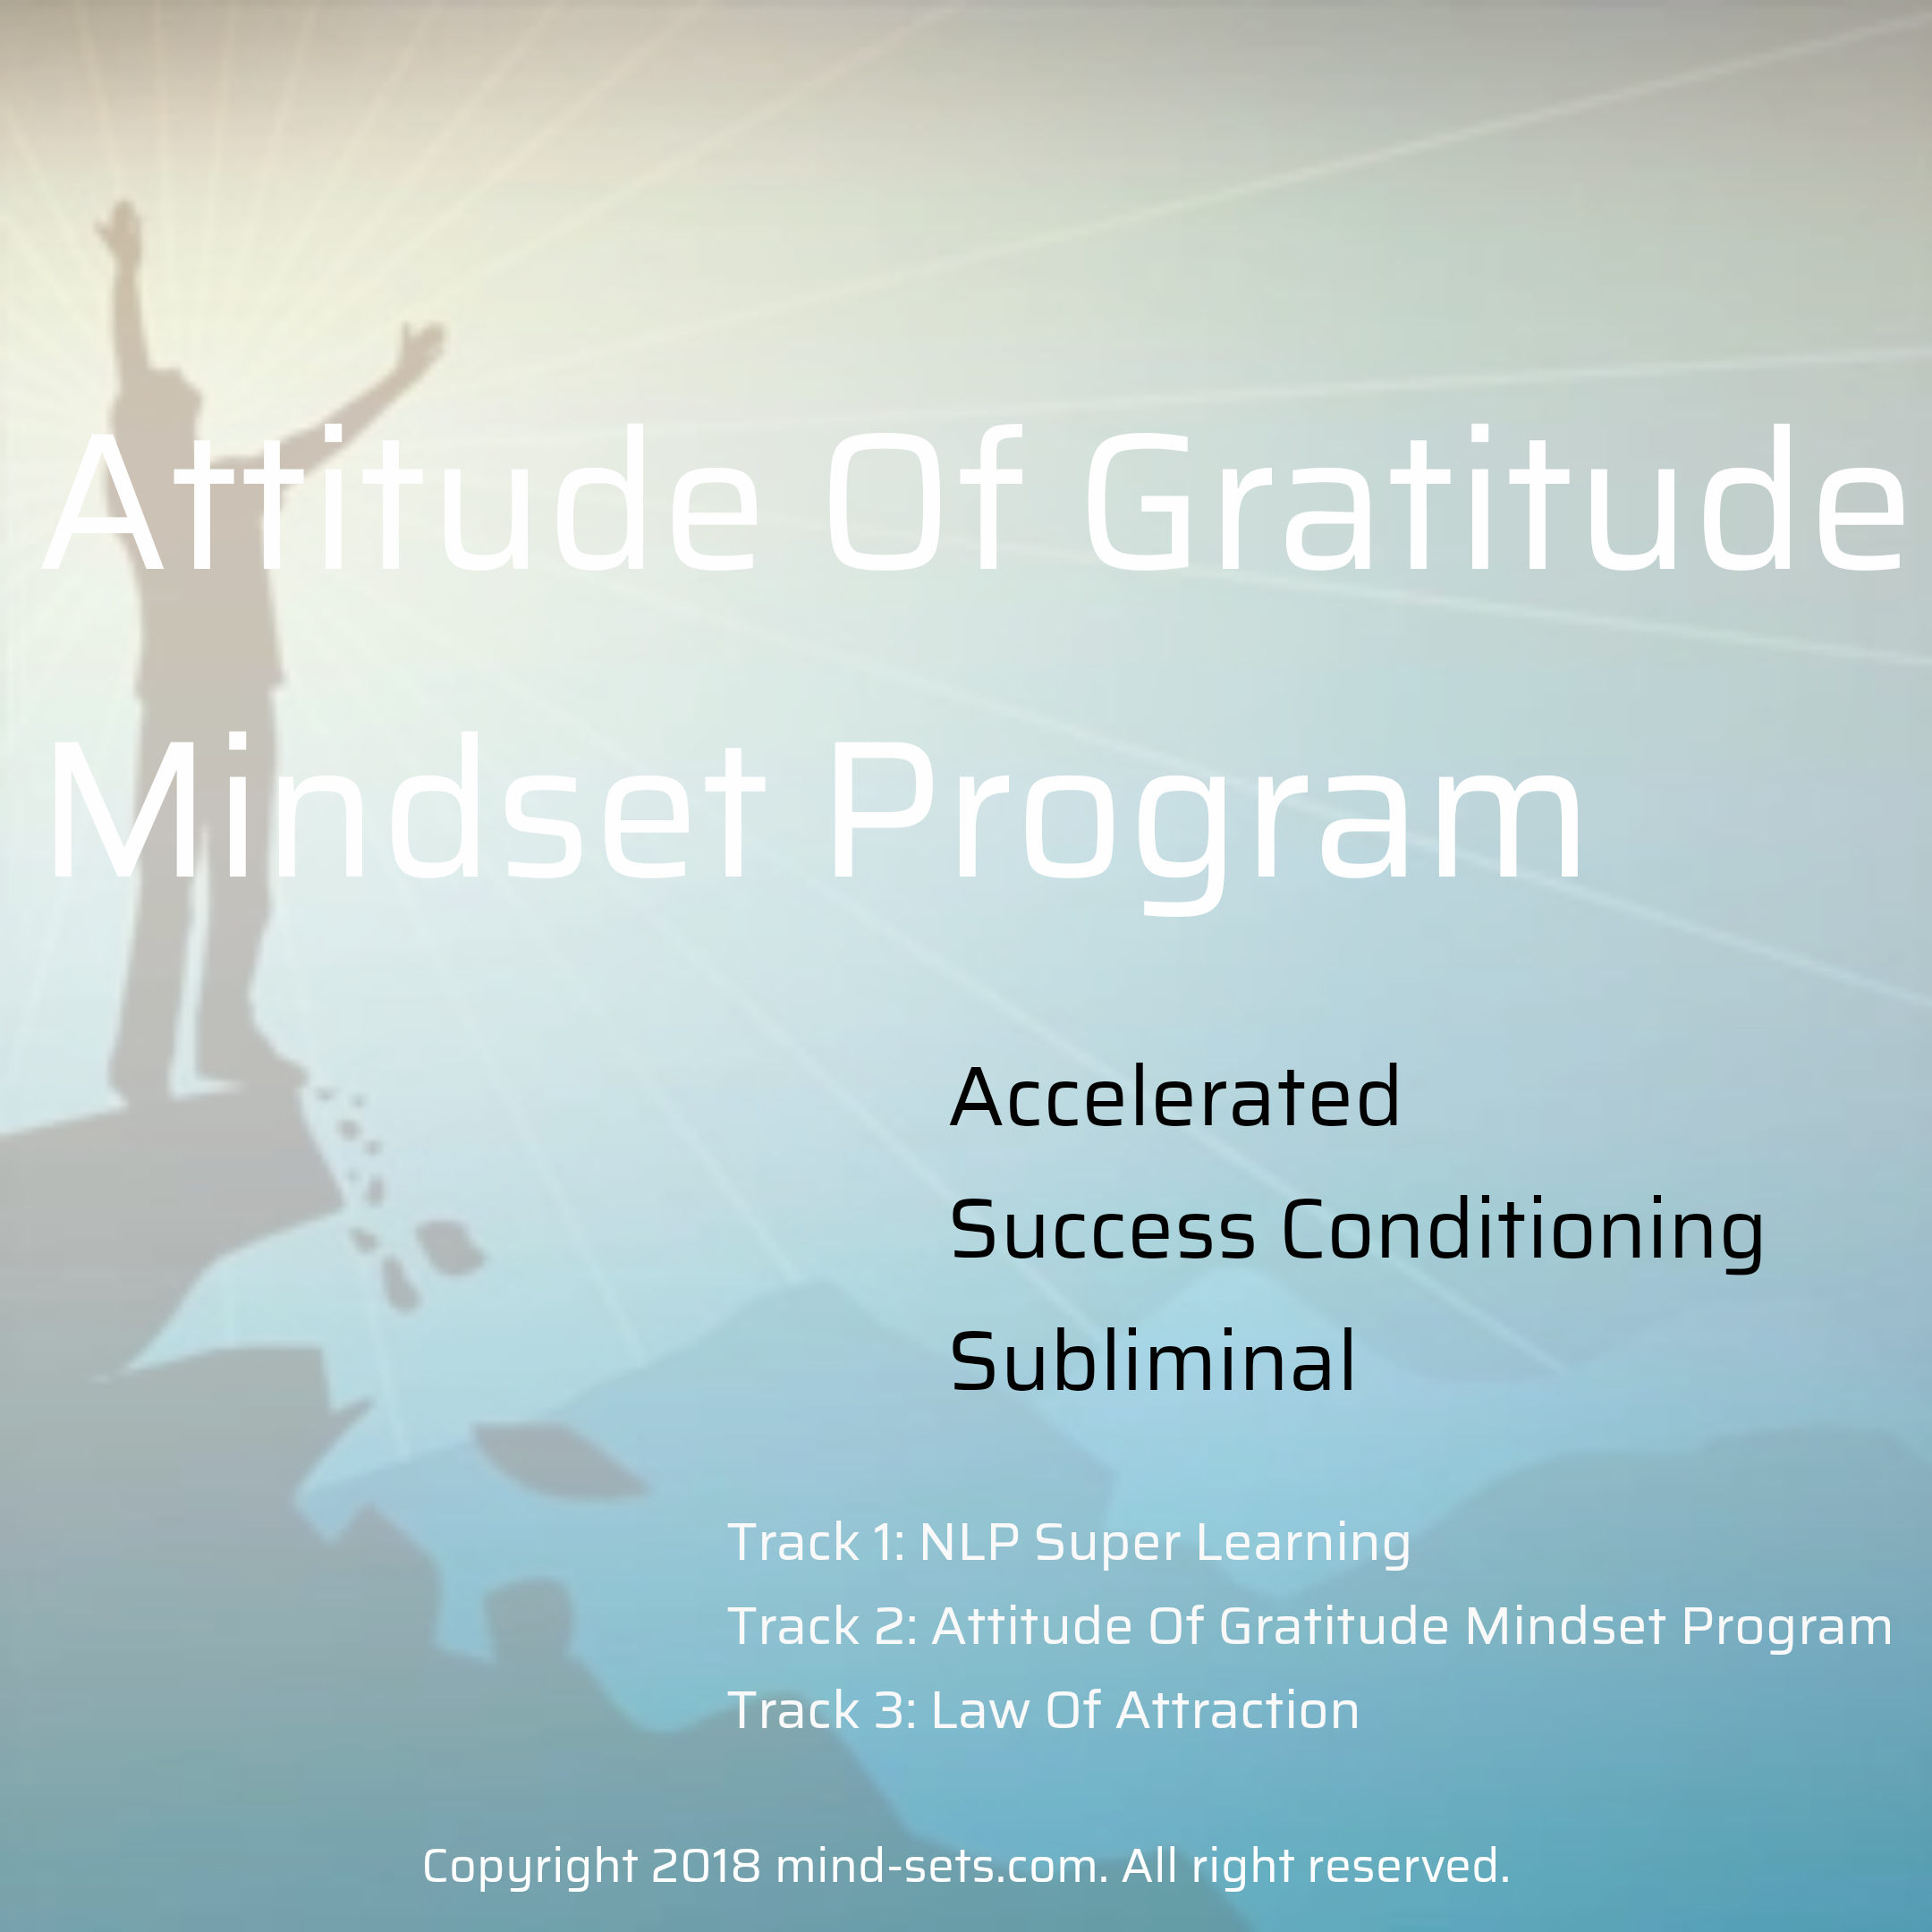 Attitude Of Gratitude Mindset Program